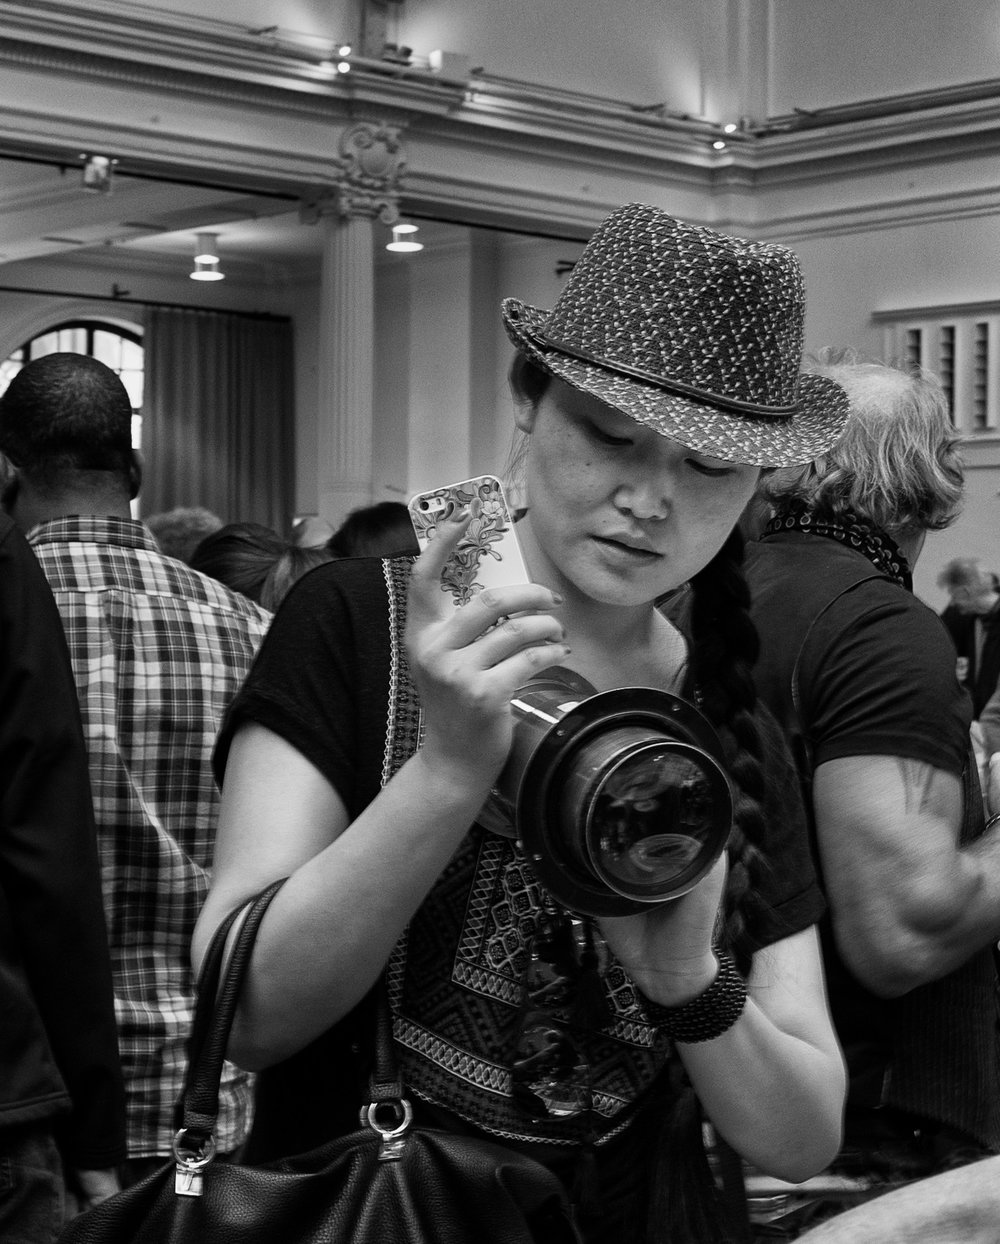 Photographica, London, is always busy and attracts buyers from around the world